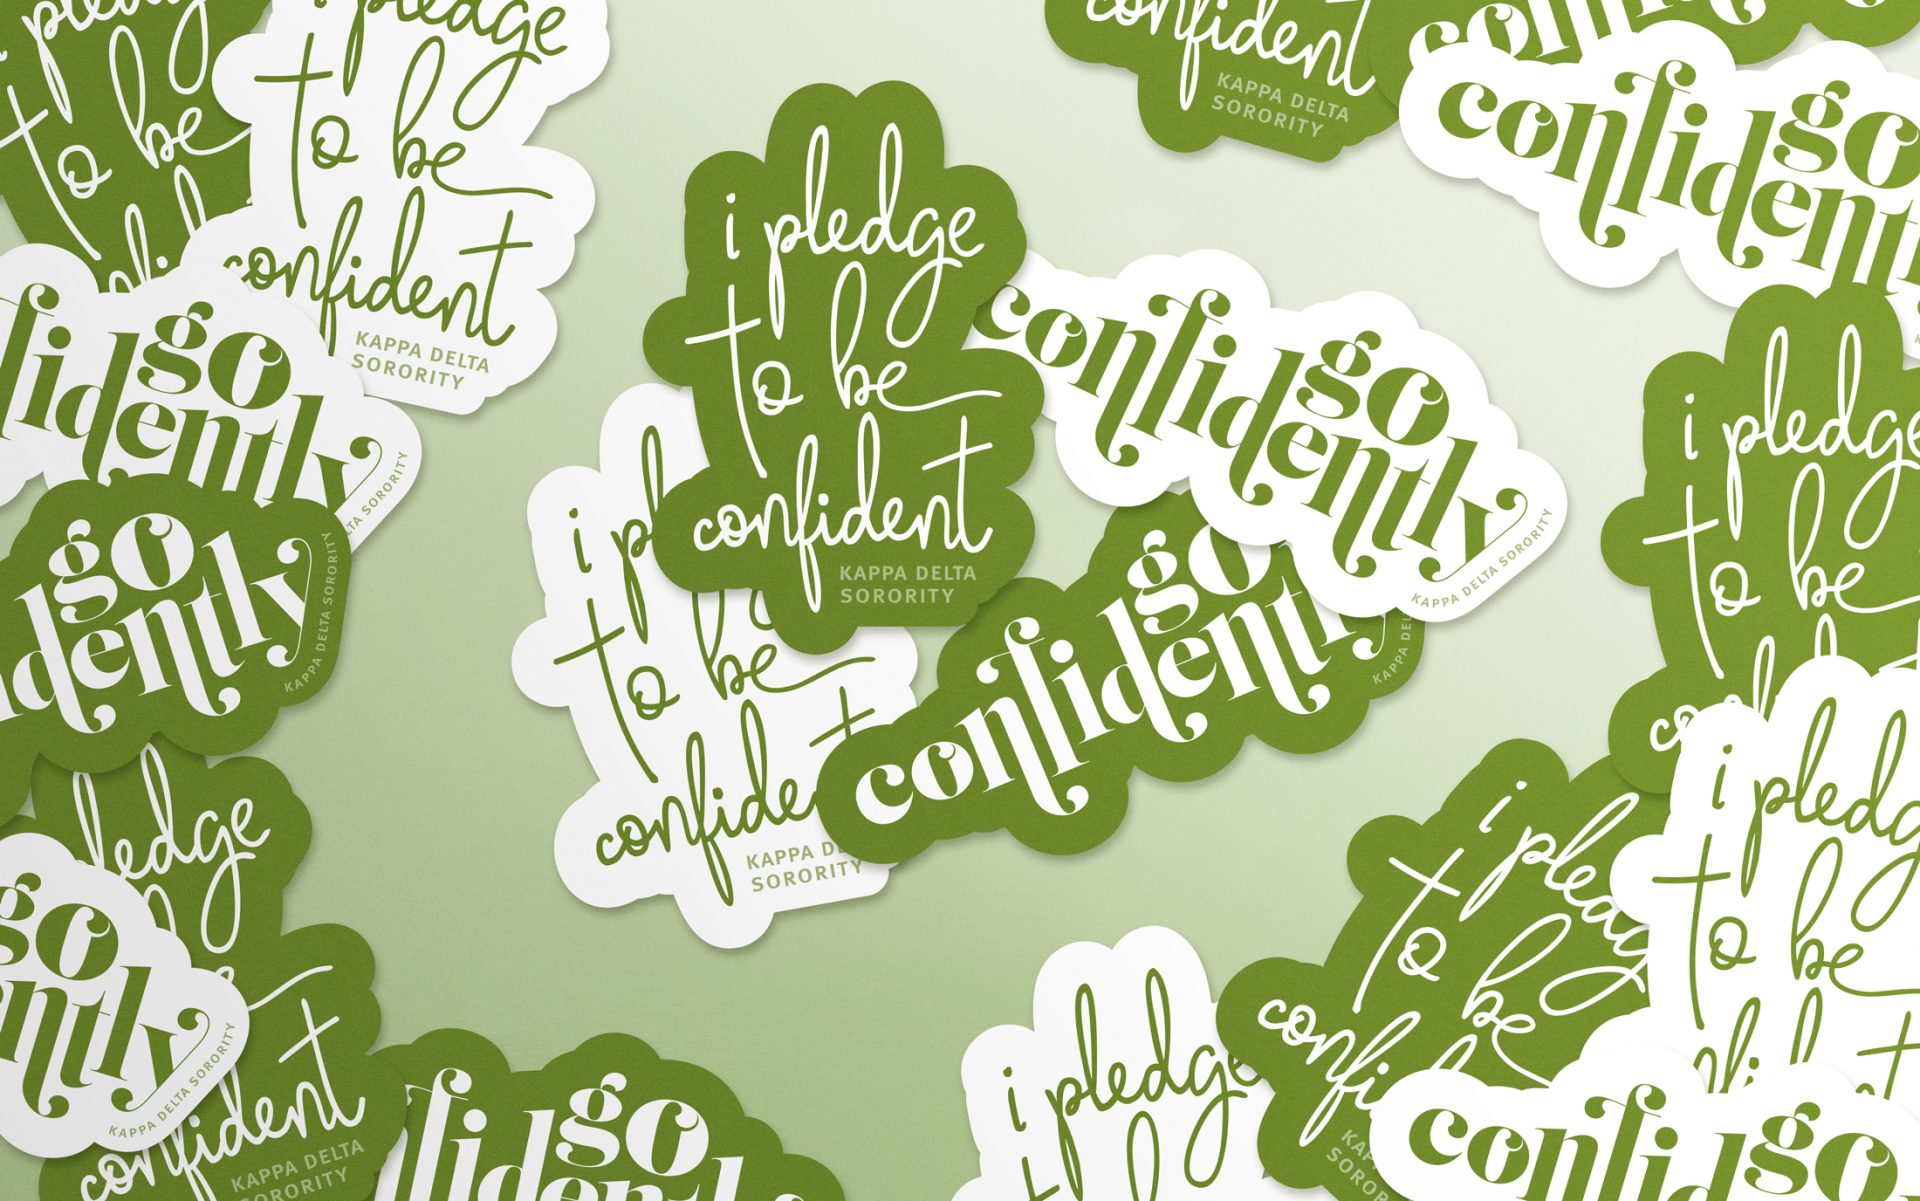 Kappa-Delta-sorority-die-cut-sticker-design-go-confidently-i-pledge